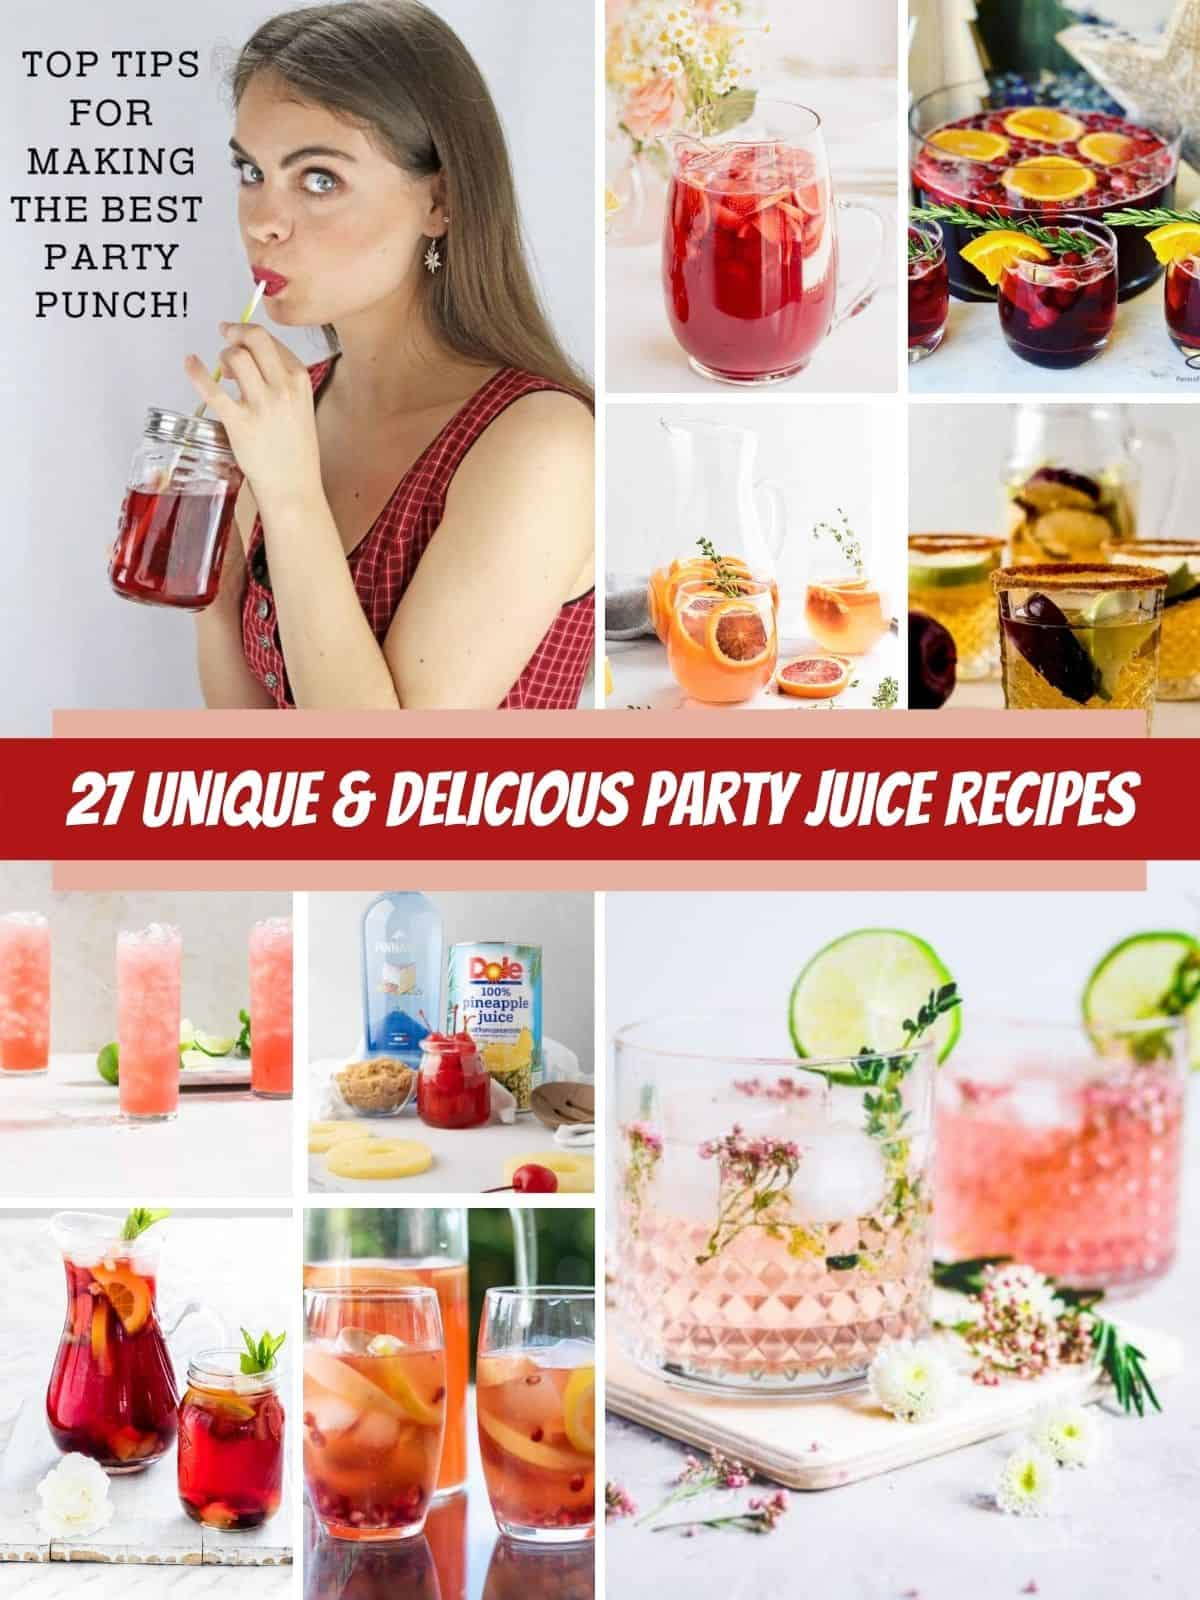 party juice recipes pictures and lady sipping punch